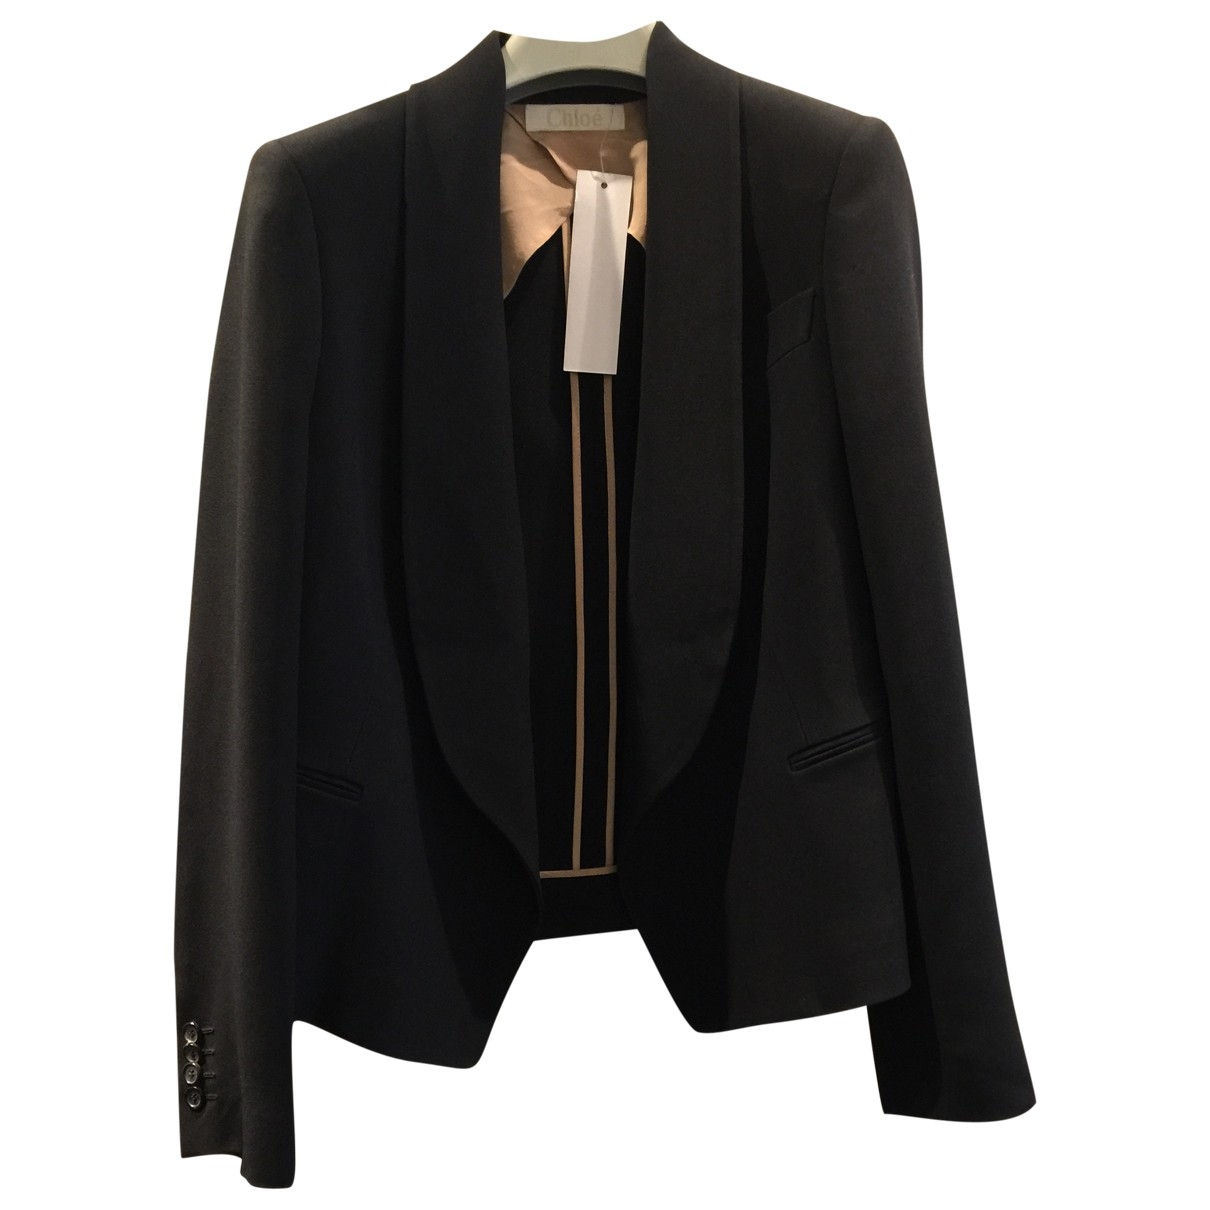 Chloé \N Black Wool jacket for Women 36 IT